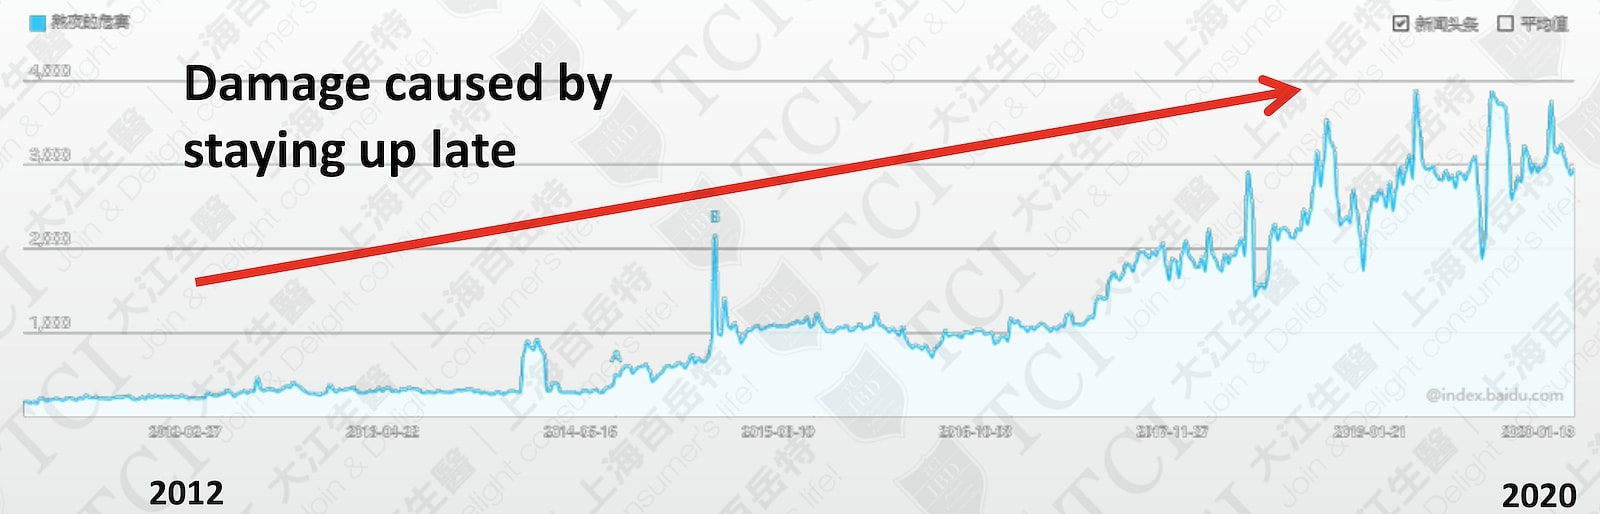 Search Volume of Damage Caused by Staying up Late / Data Source: Baidu Index